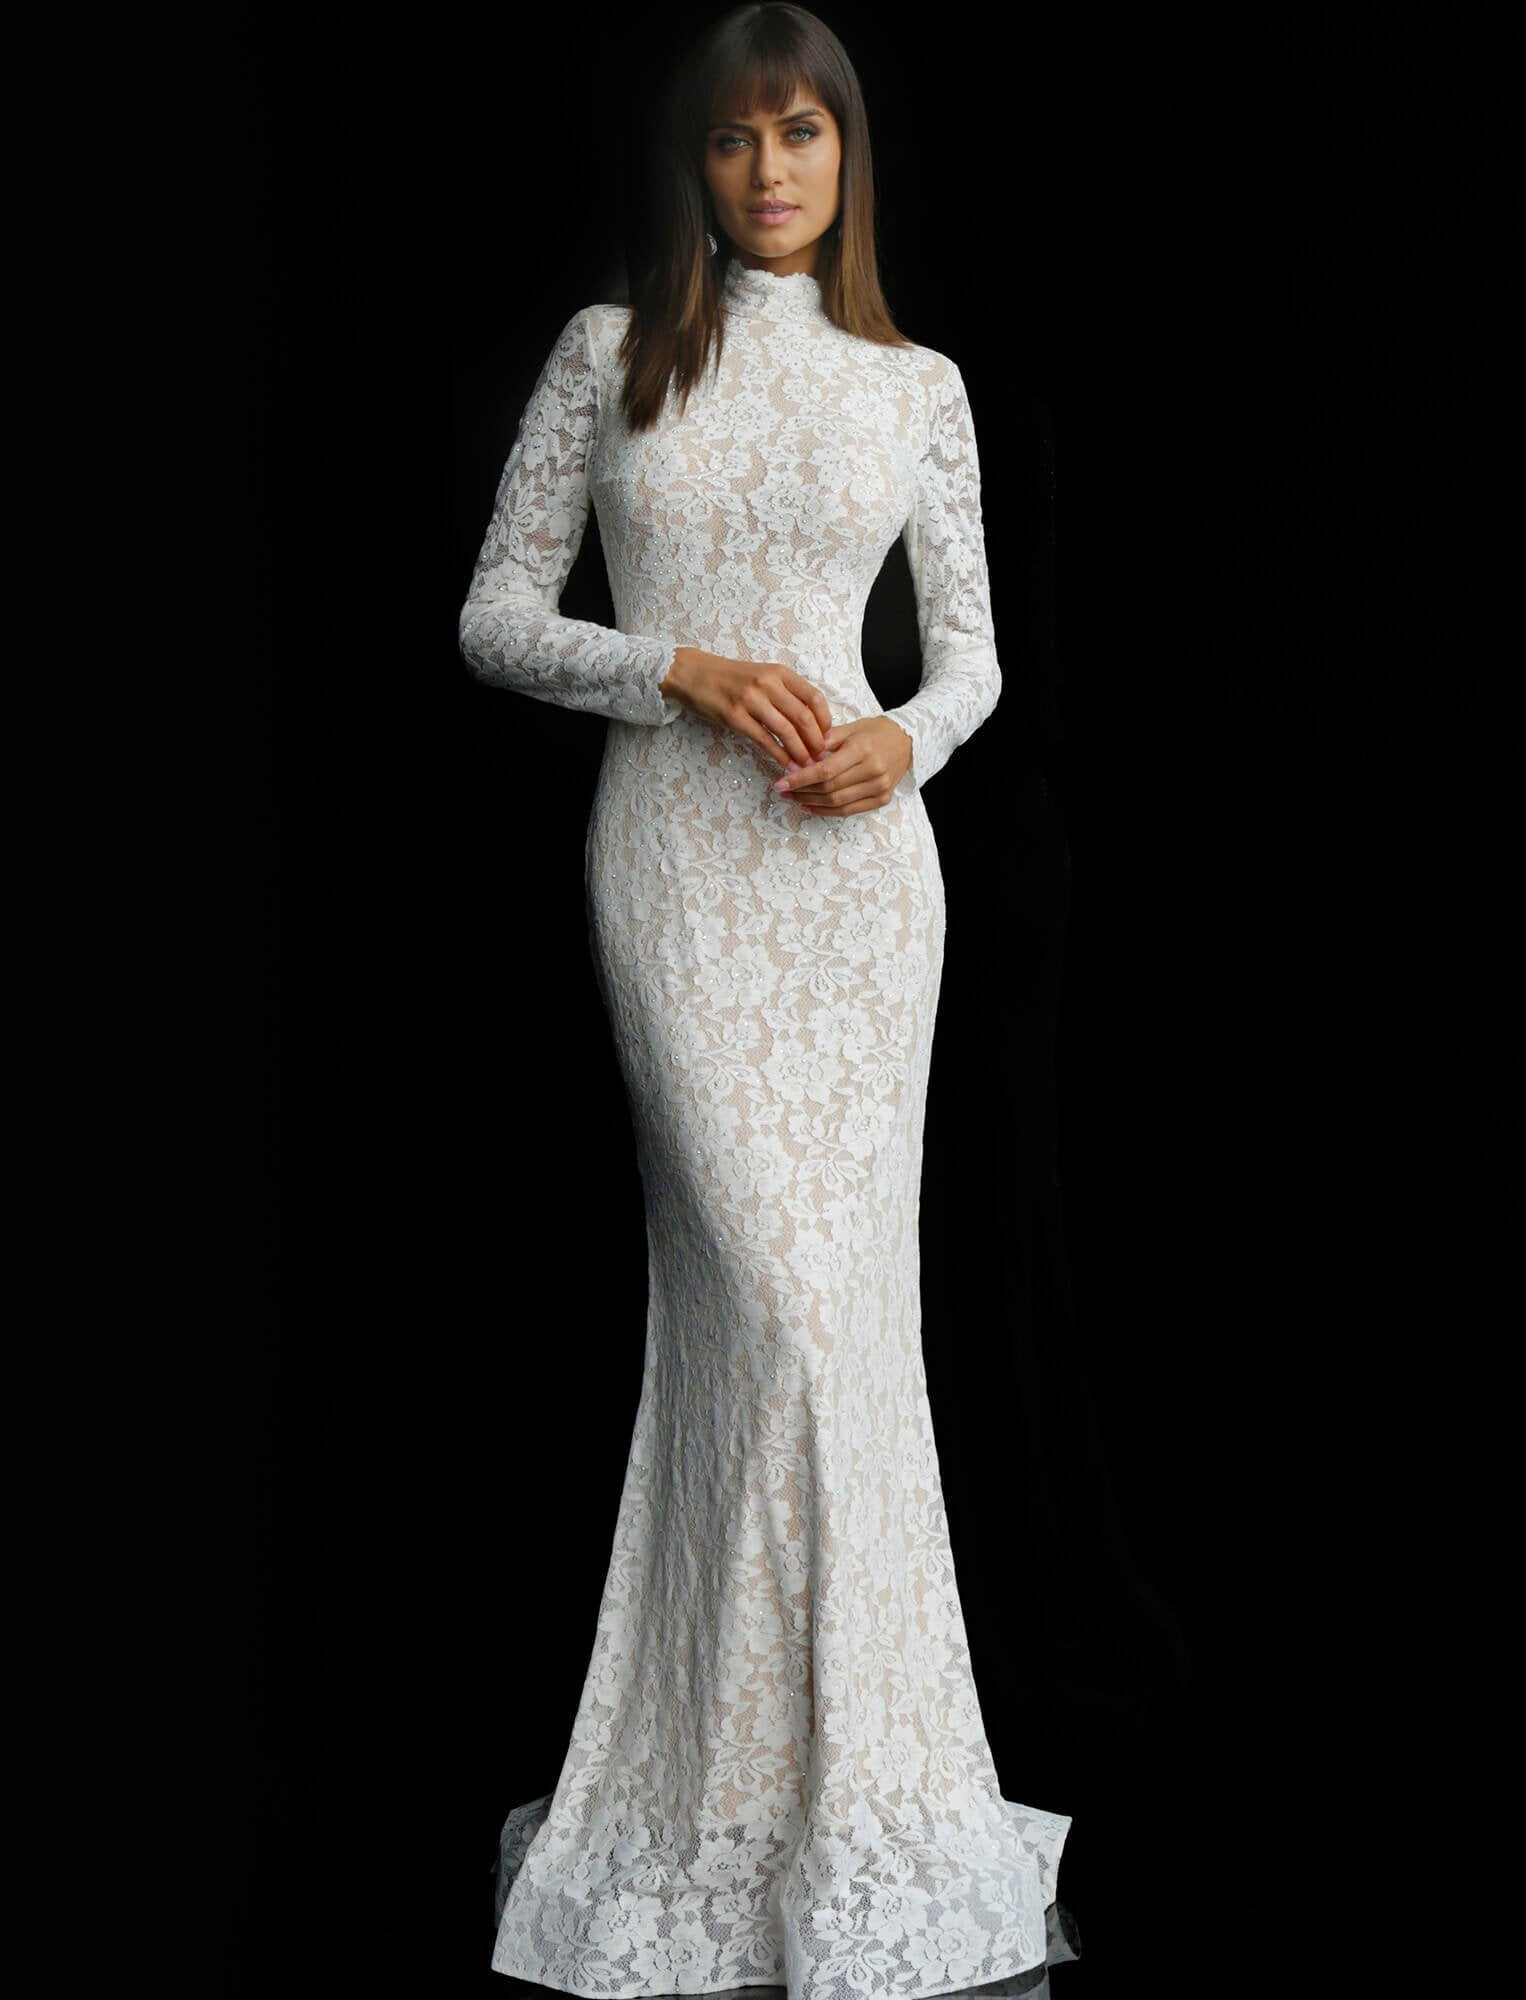 Jovani - Long Sleeve High Neck Trumpet Dress 63209 In White and Nude